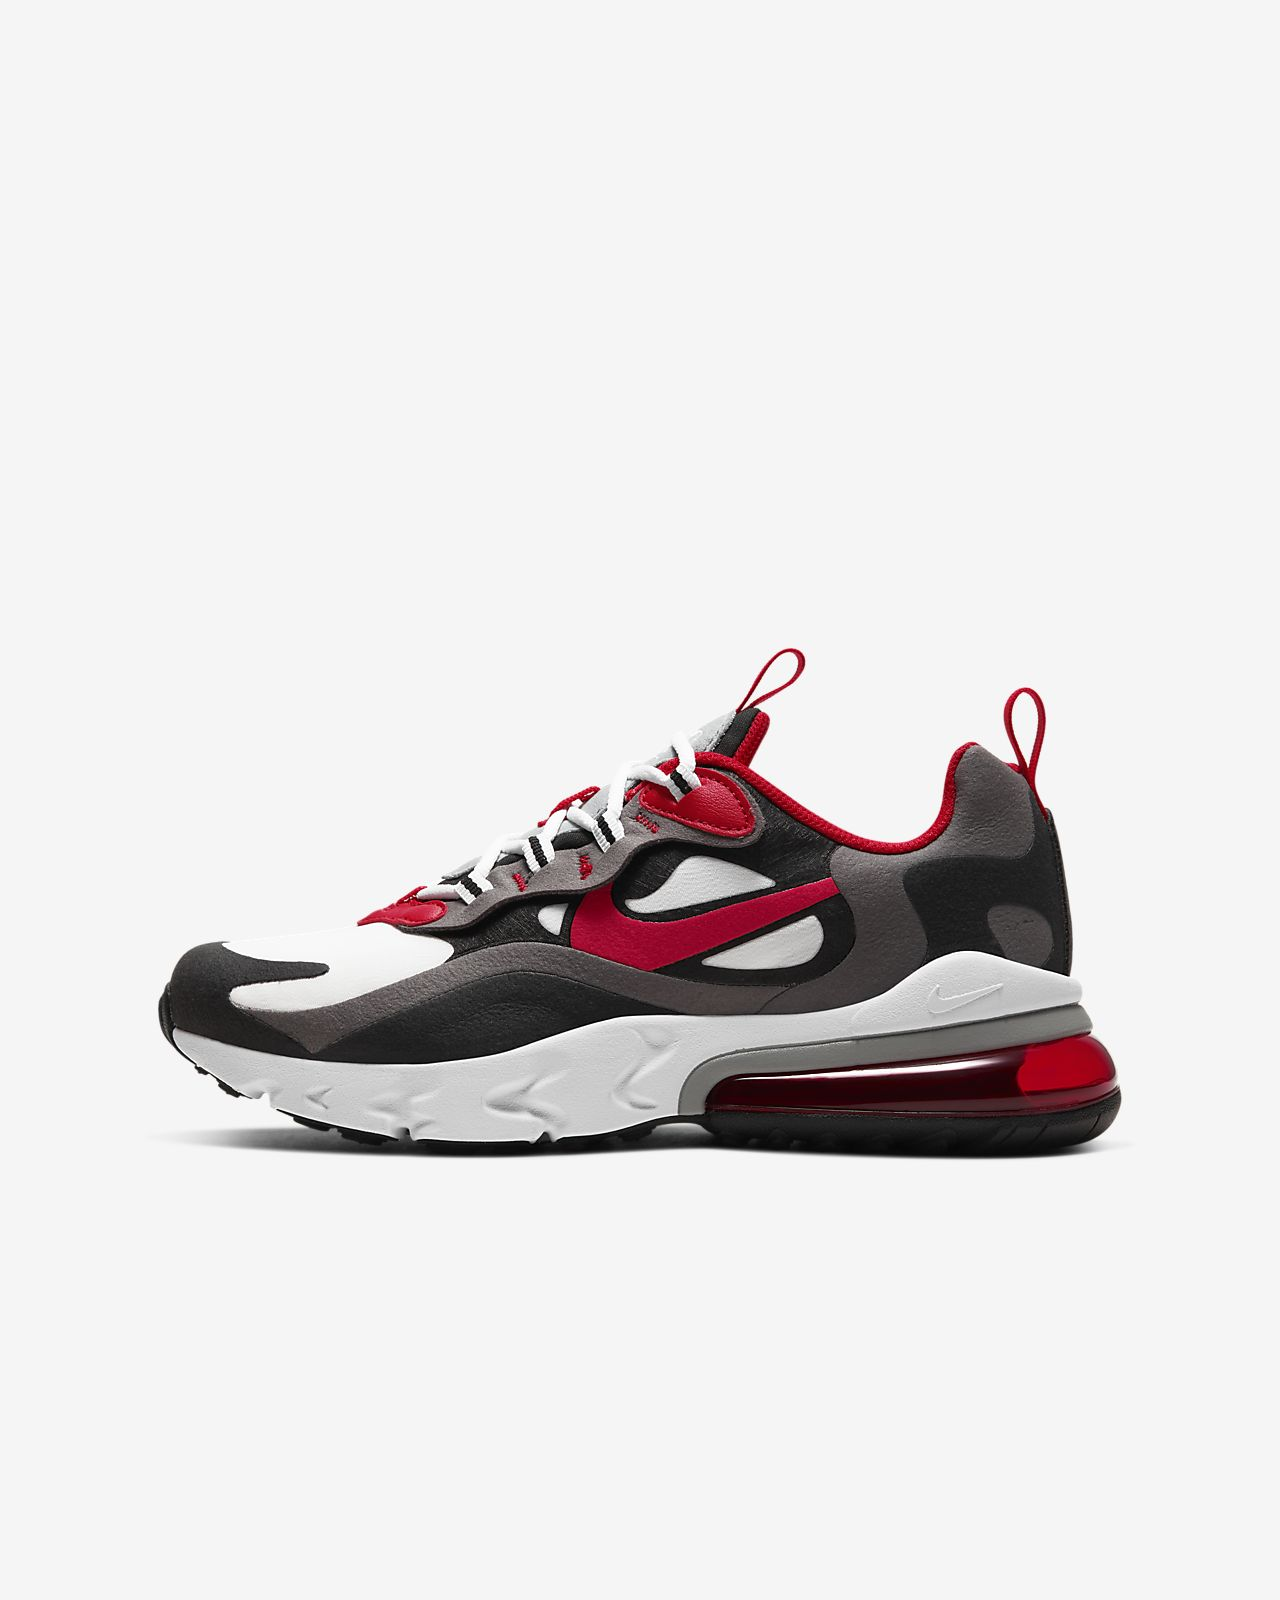 Nike Air Max 270 React sko til store barn